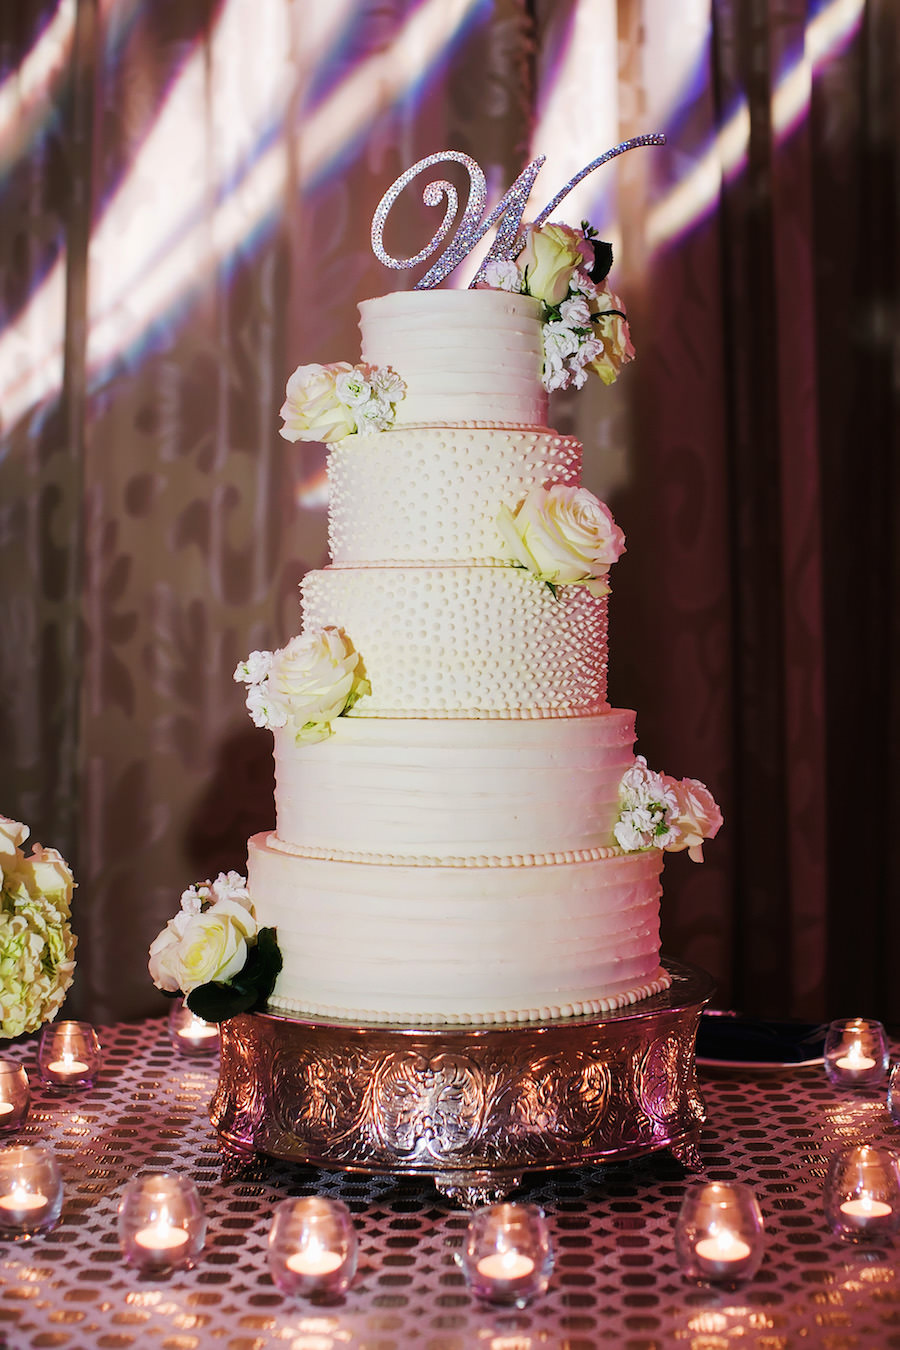 Traditional Five Tier Round White Wedding Cake with White Roses and Silver Initial Cake Topper on Silver Specialty Linen | Wedding Cake by the Vinoy Renaissance | St. Petersburg Wedding Photographer Limelight Photography